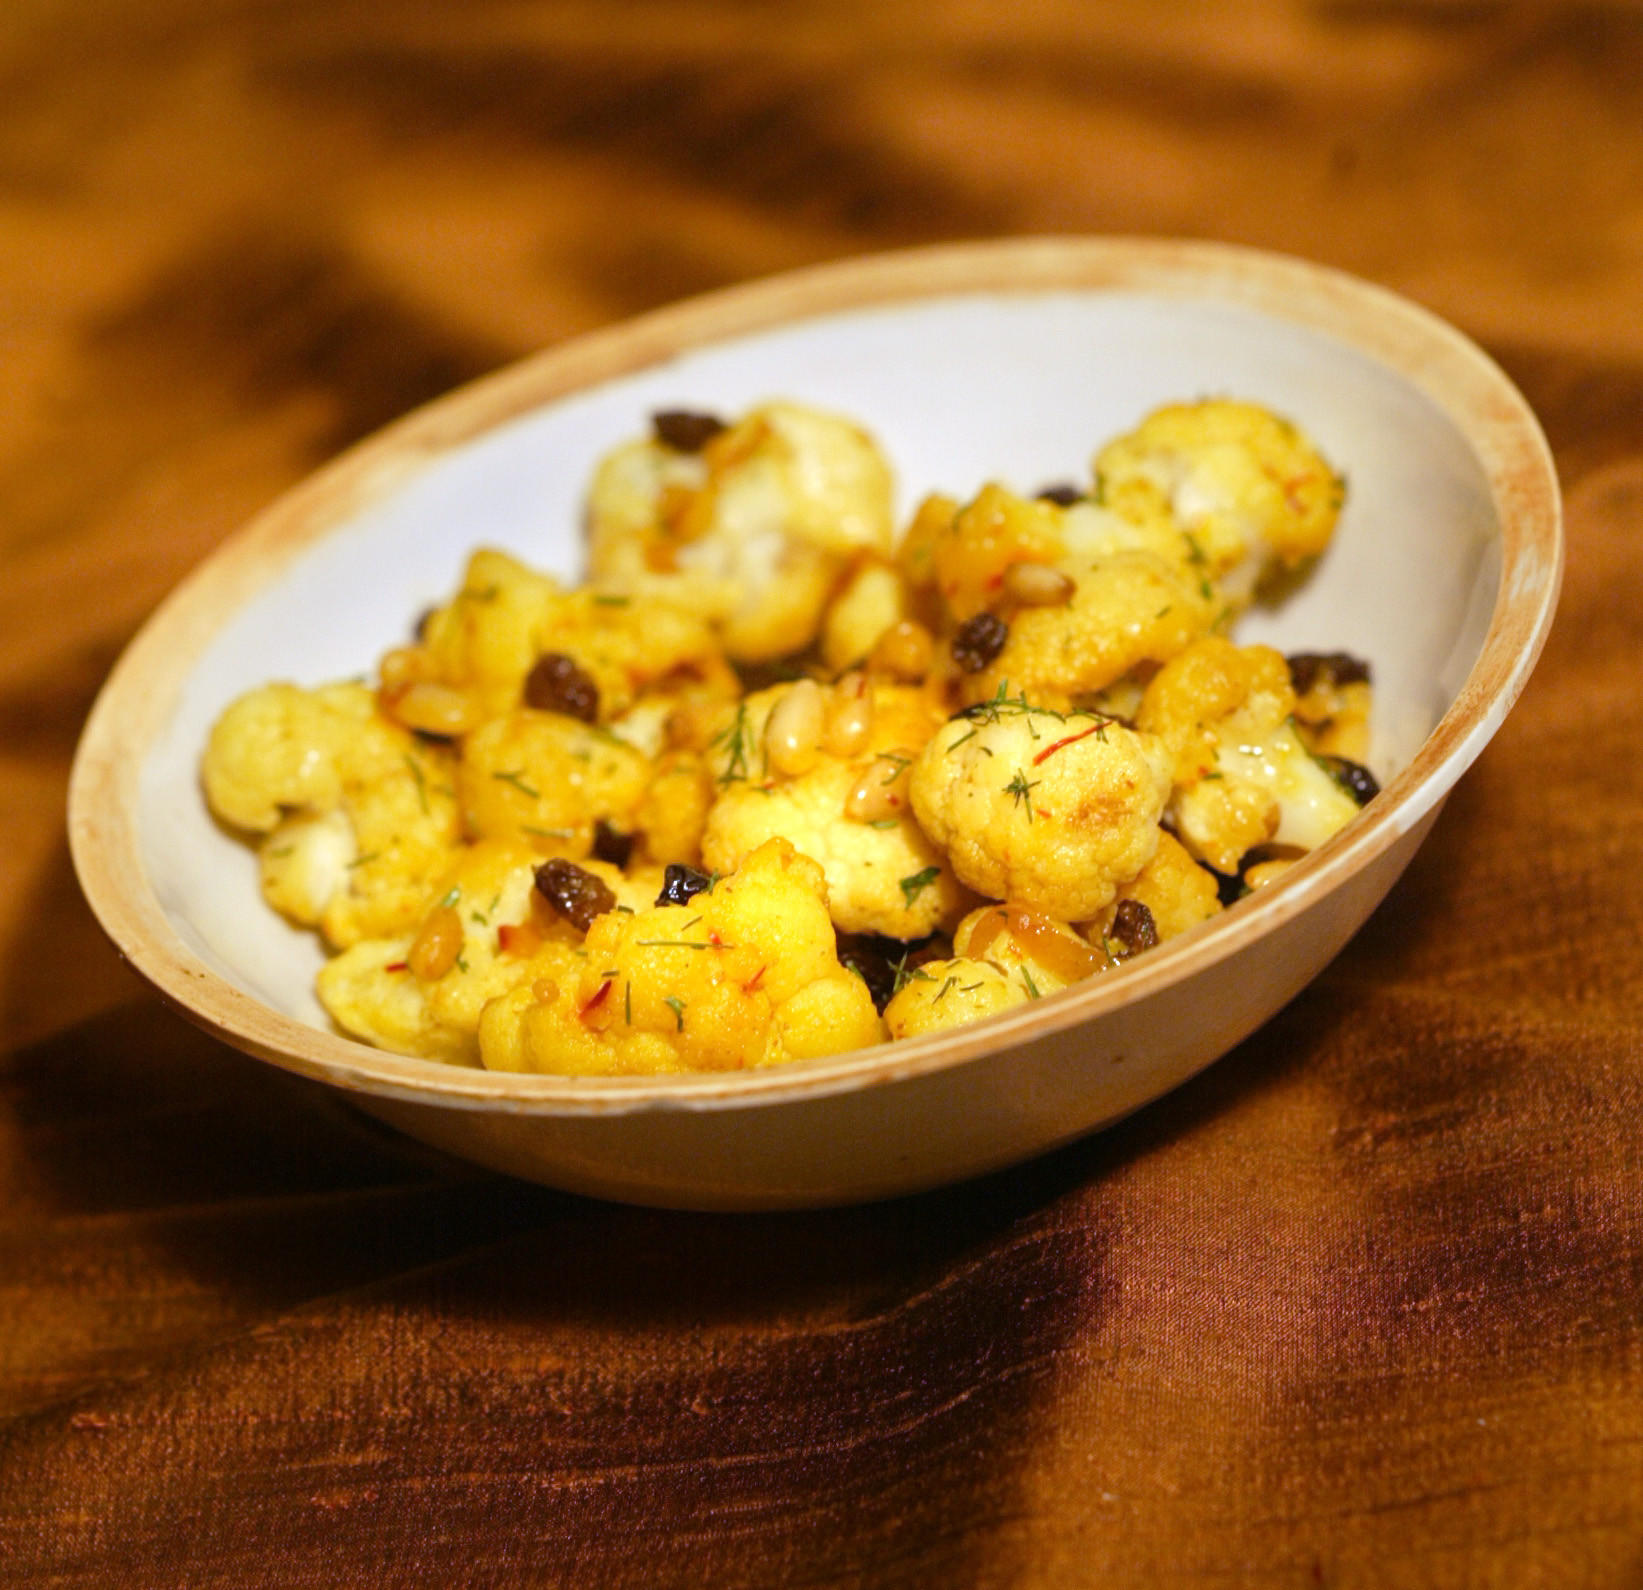 Cauliflower with currants and pine nuts